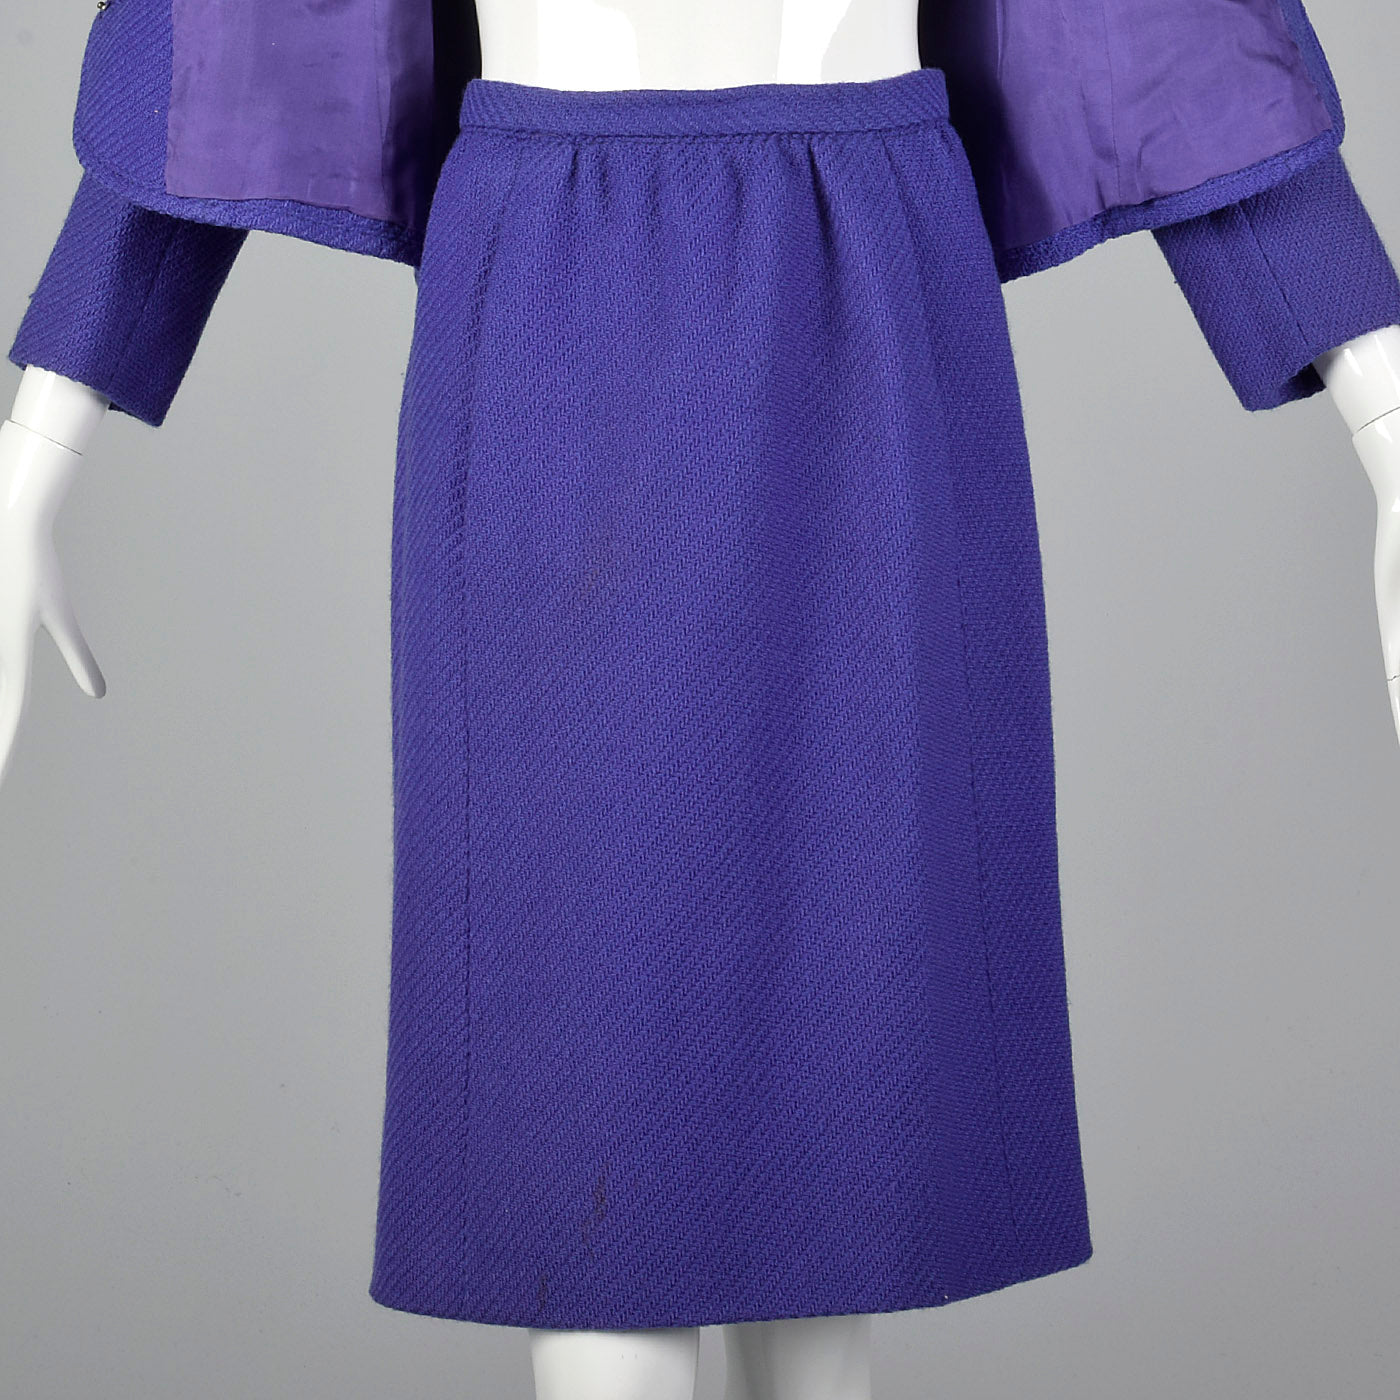 1960s Purple Skirt Suit with Decorative Buttons